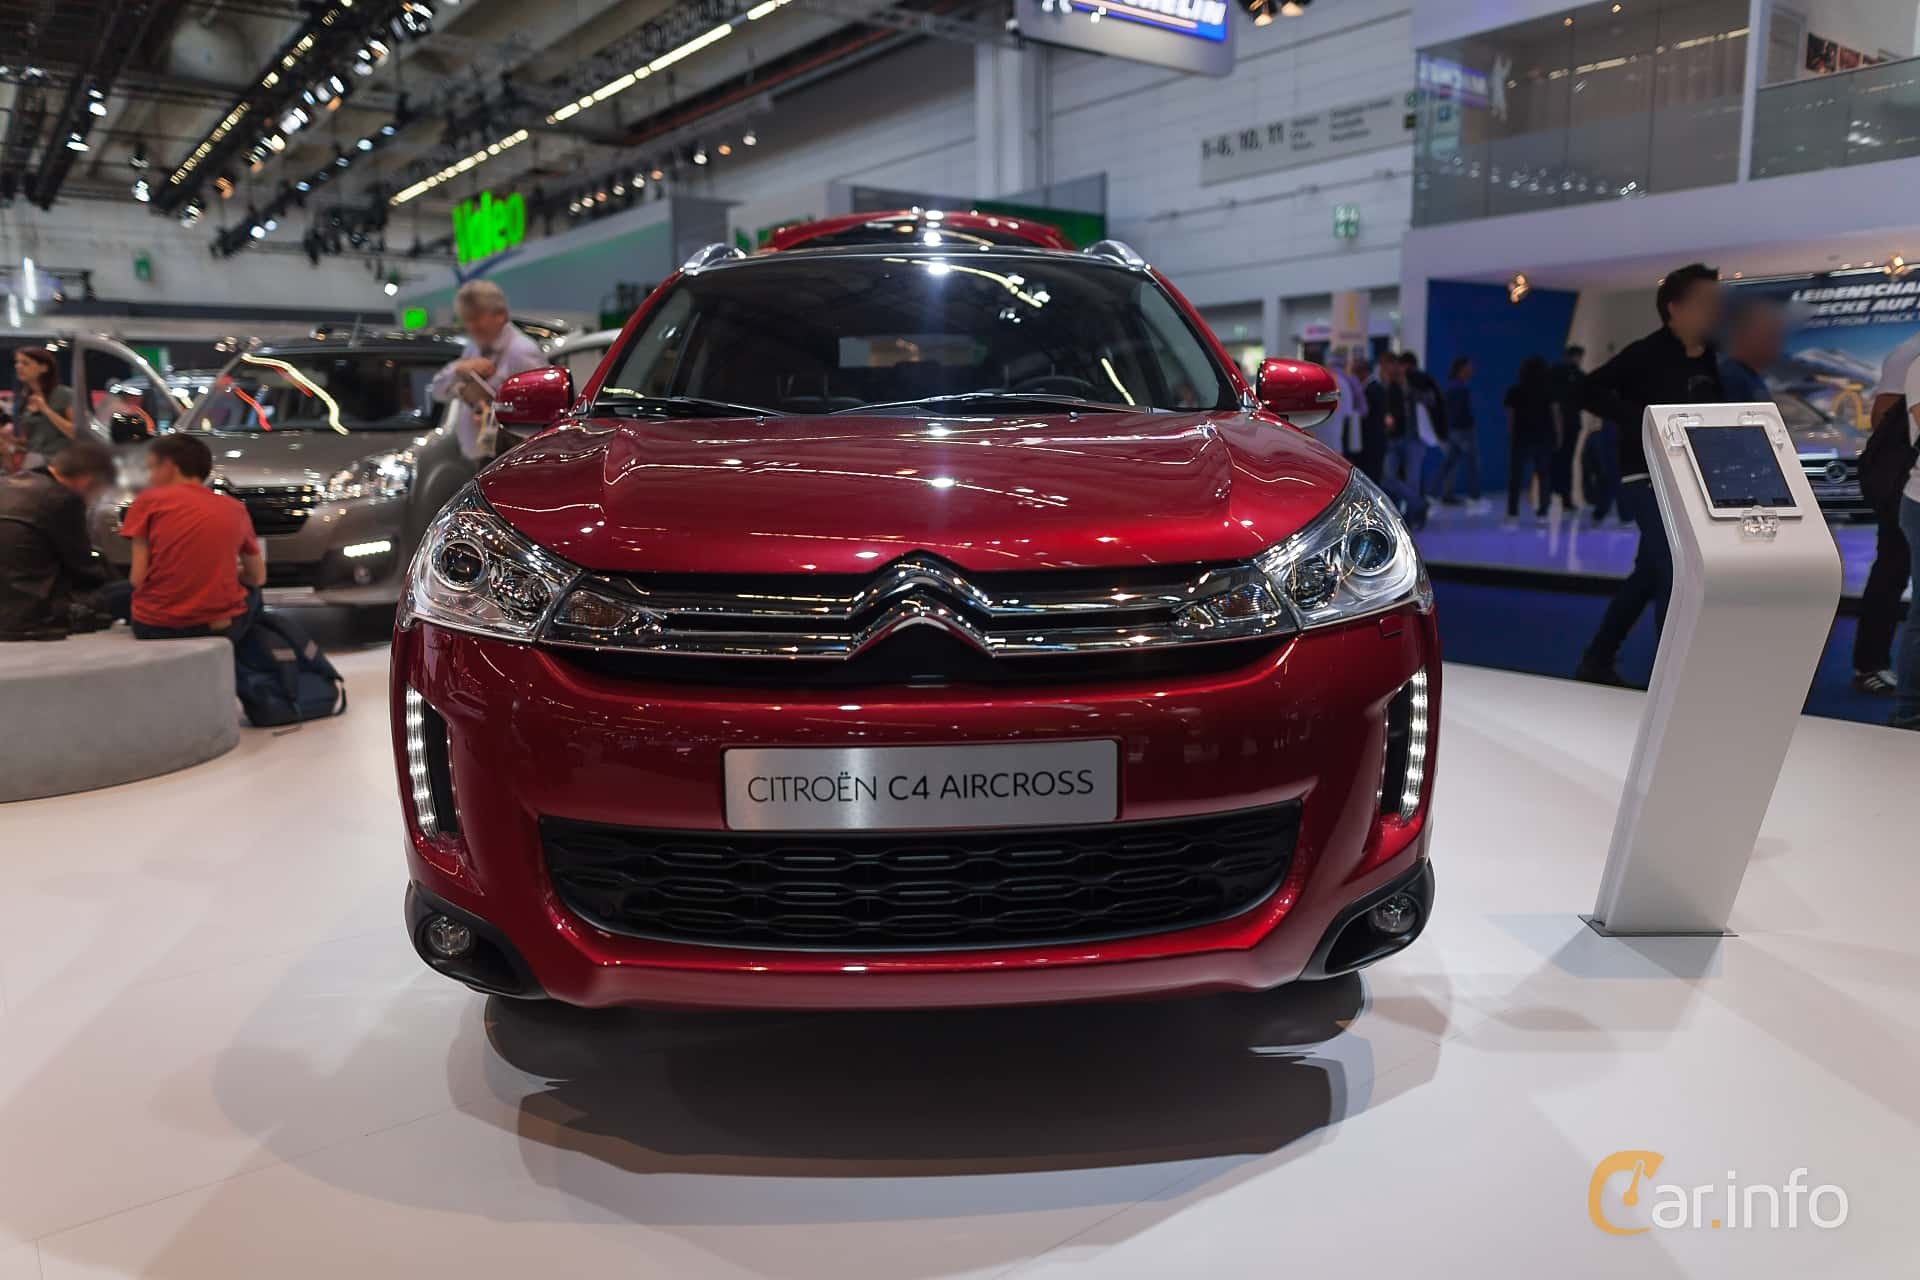 citro n c4 aircross 1 6 4wd manual 114hp 2016 at iaa 2015. Black Bedroom Furniture Sets. Home Design Ideas